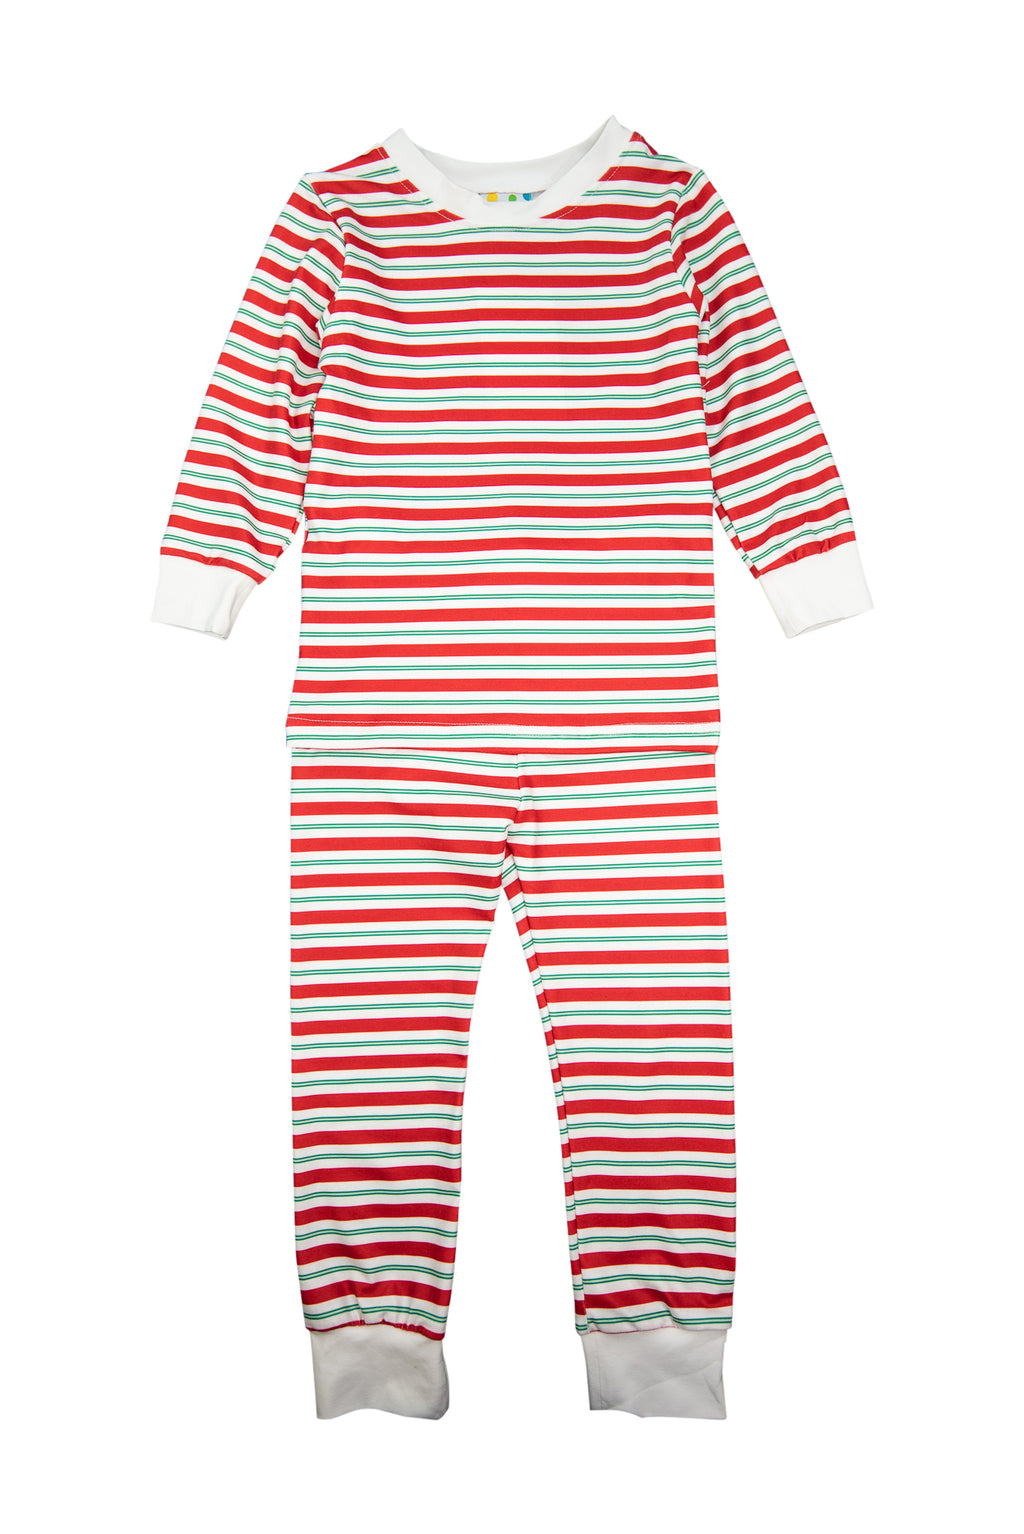 Boys Red/Green Stripe Pajama Pant Set